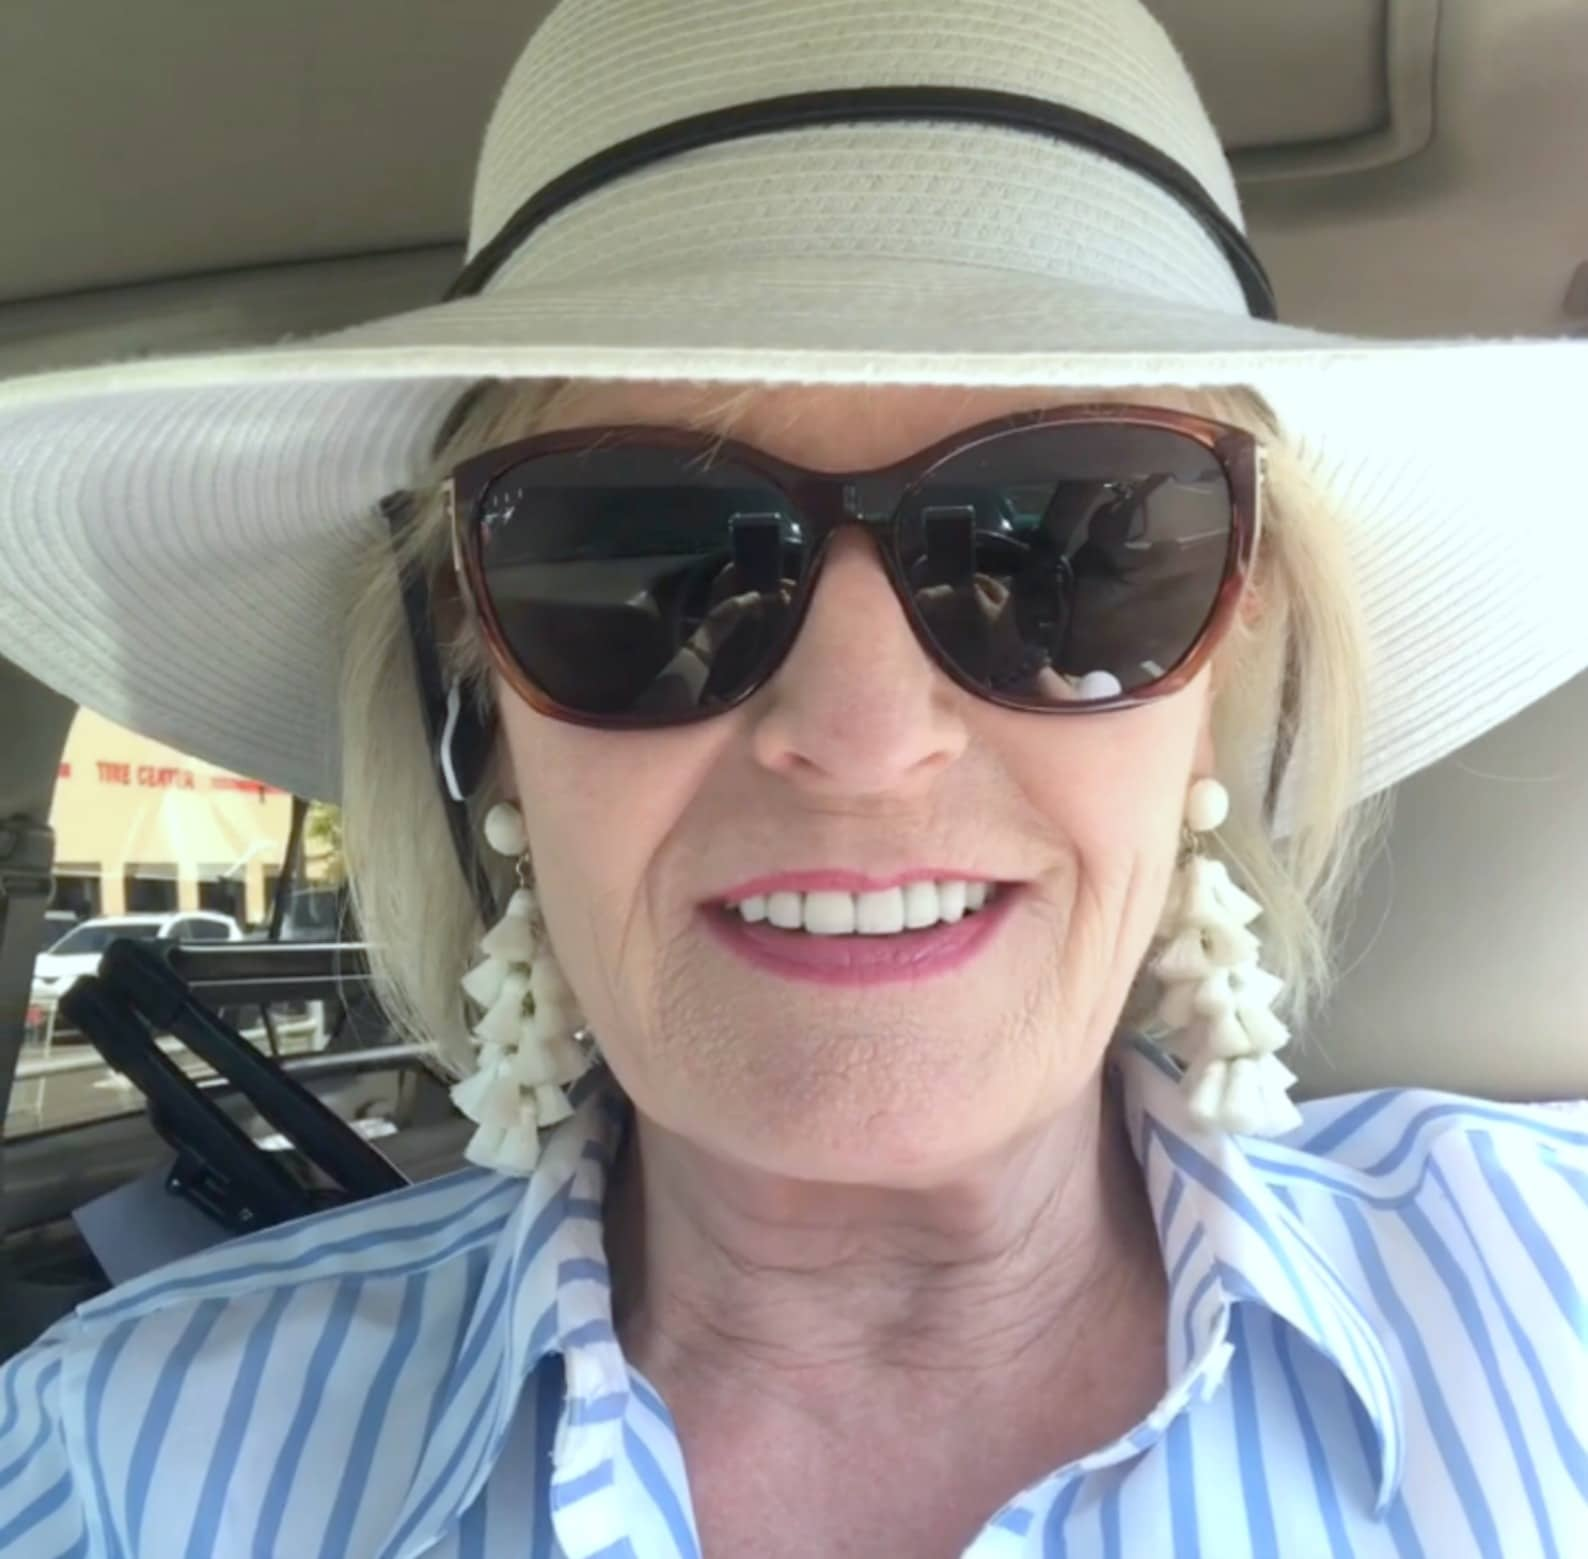 Jennifer Connolly of A Well Styled Life traveling wearing a white hat, white tassel earrings and blue and white striped shirt